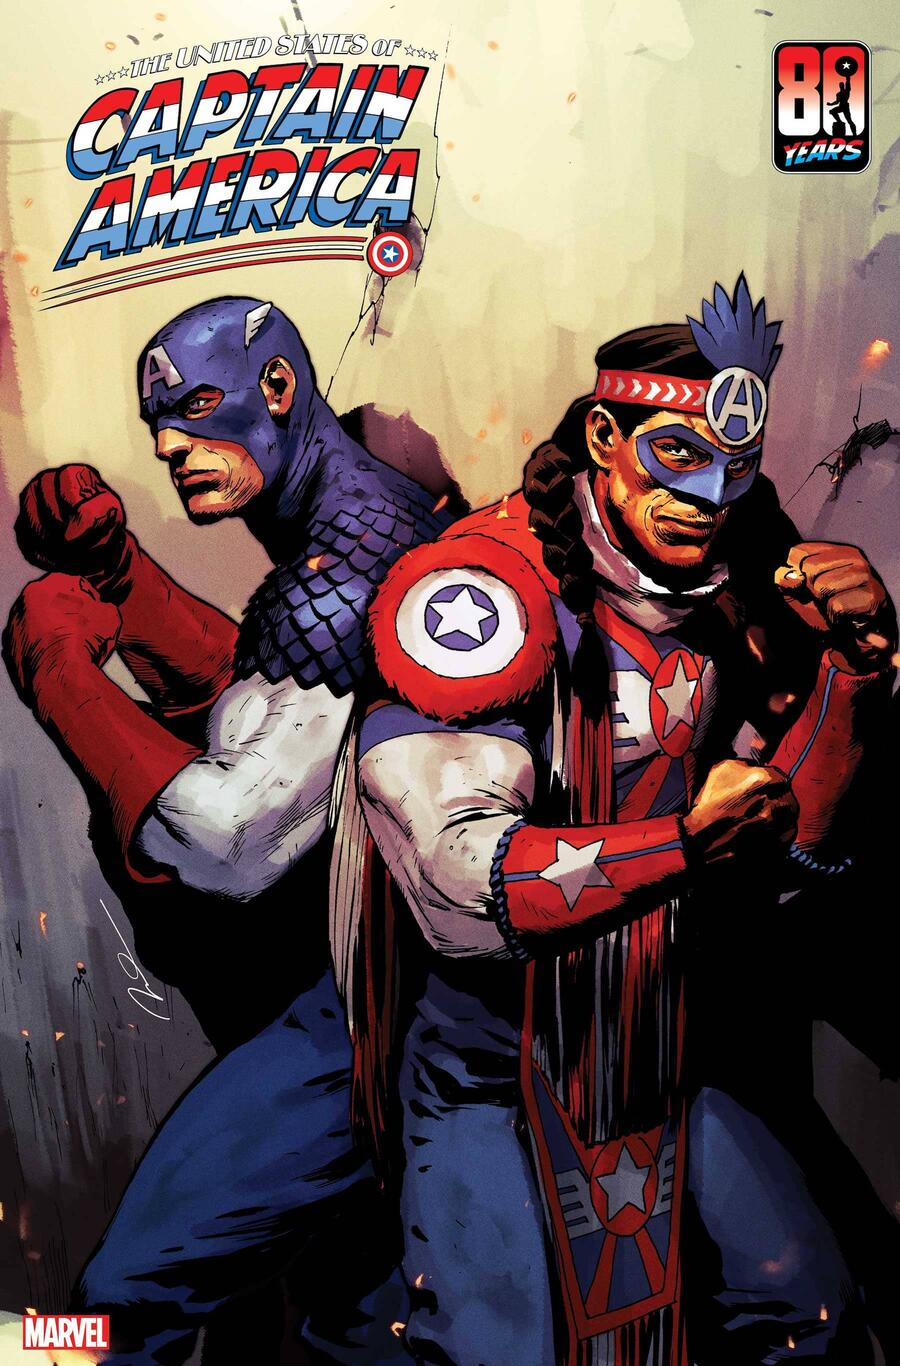 THE UNITED STATES OF CAPTAIN AMERICA #3 cover by Gerald Parel